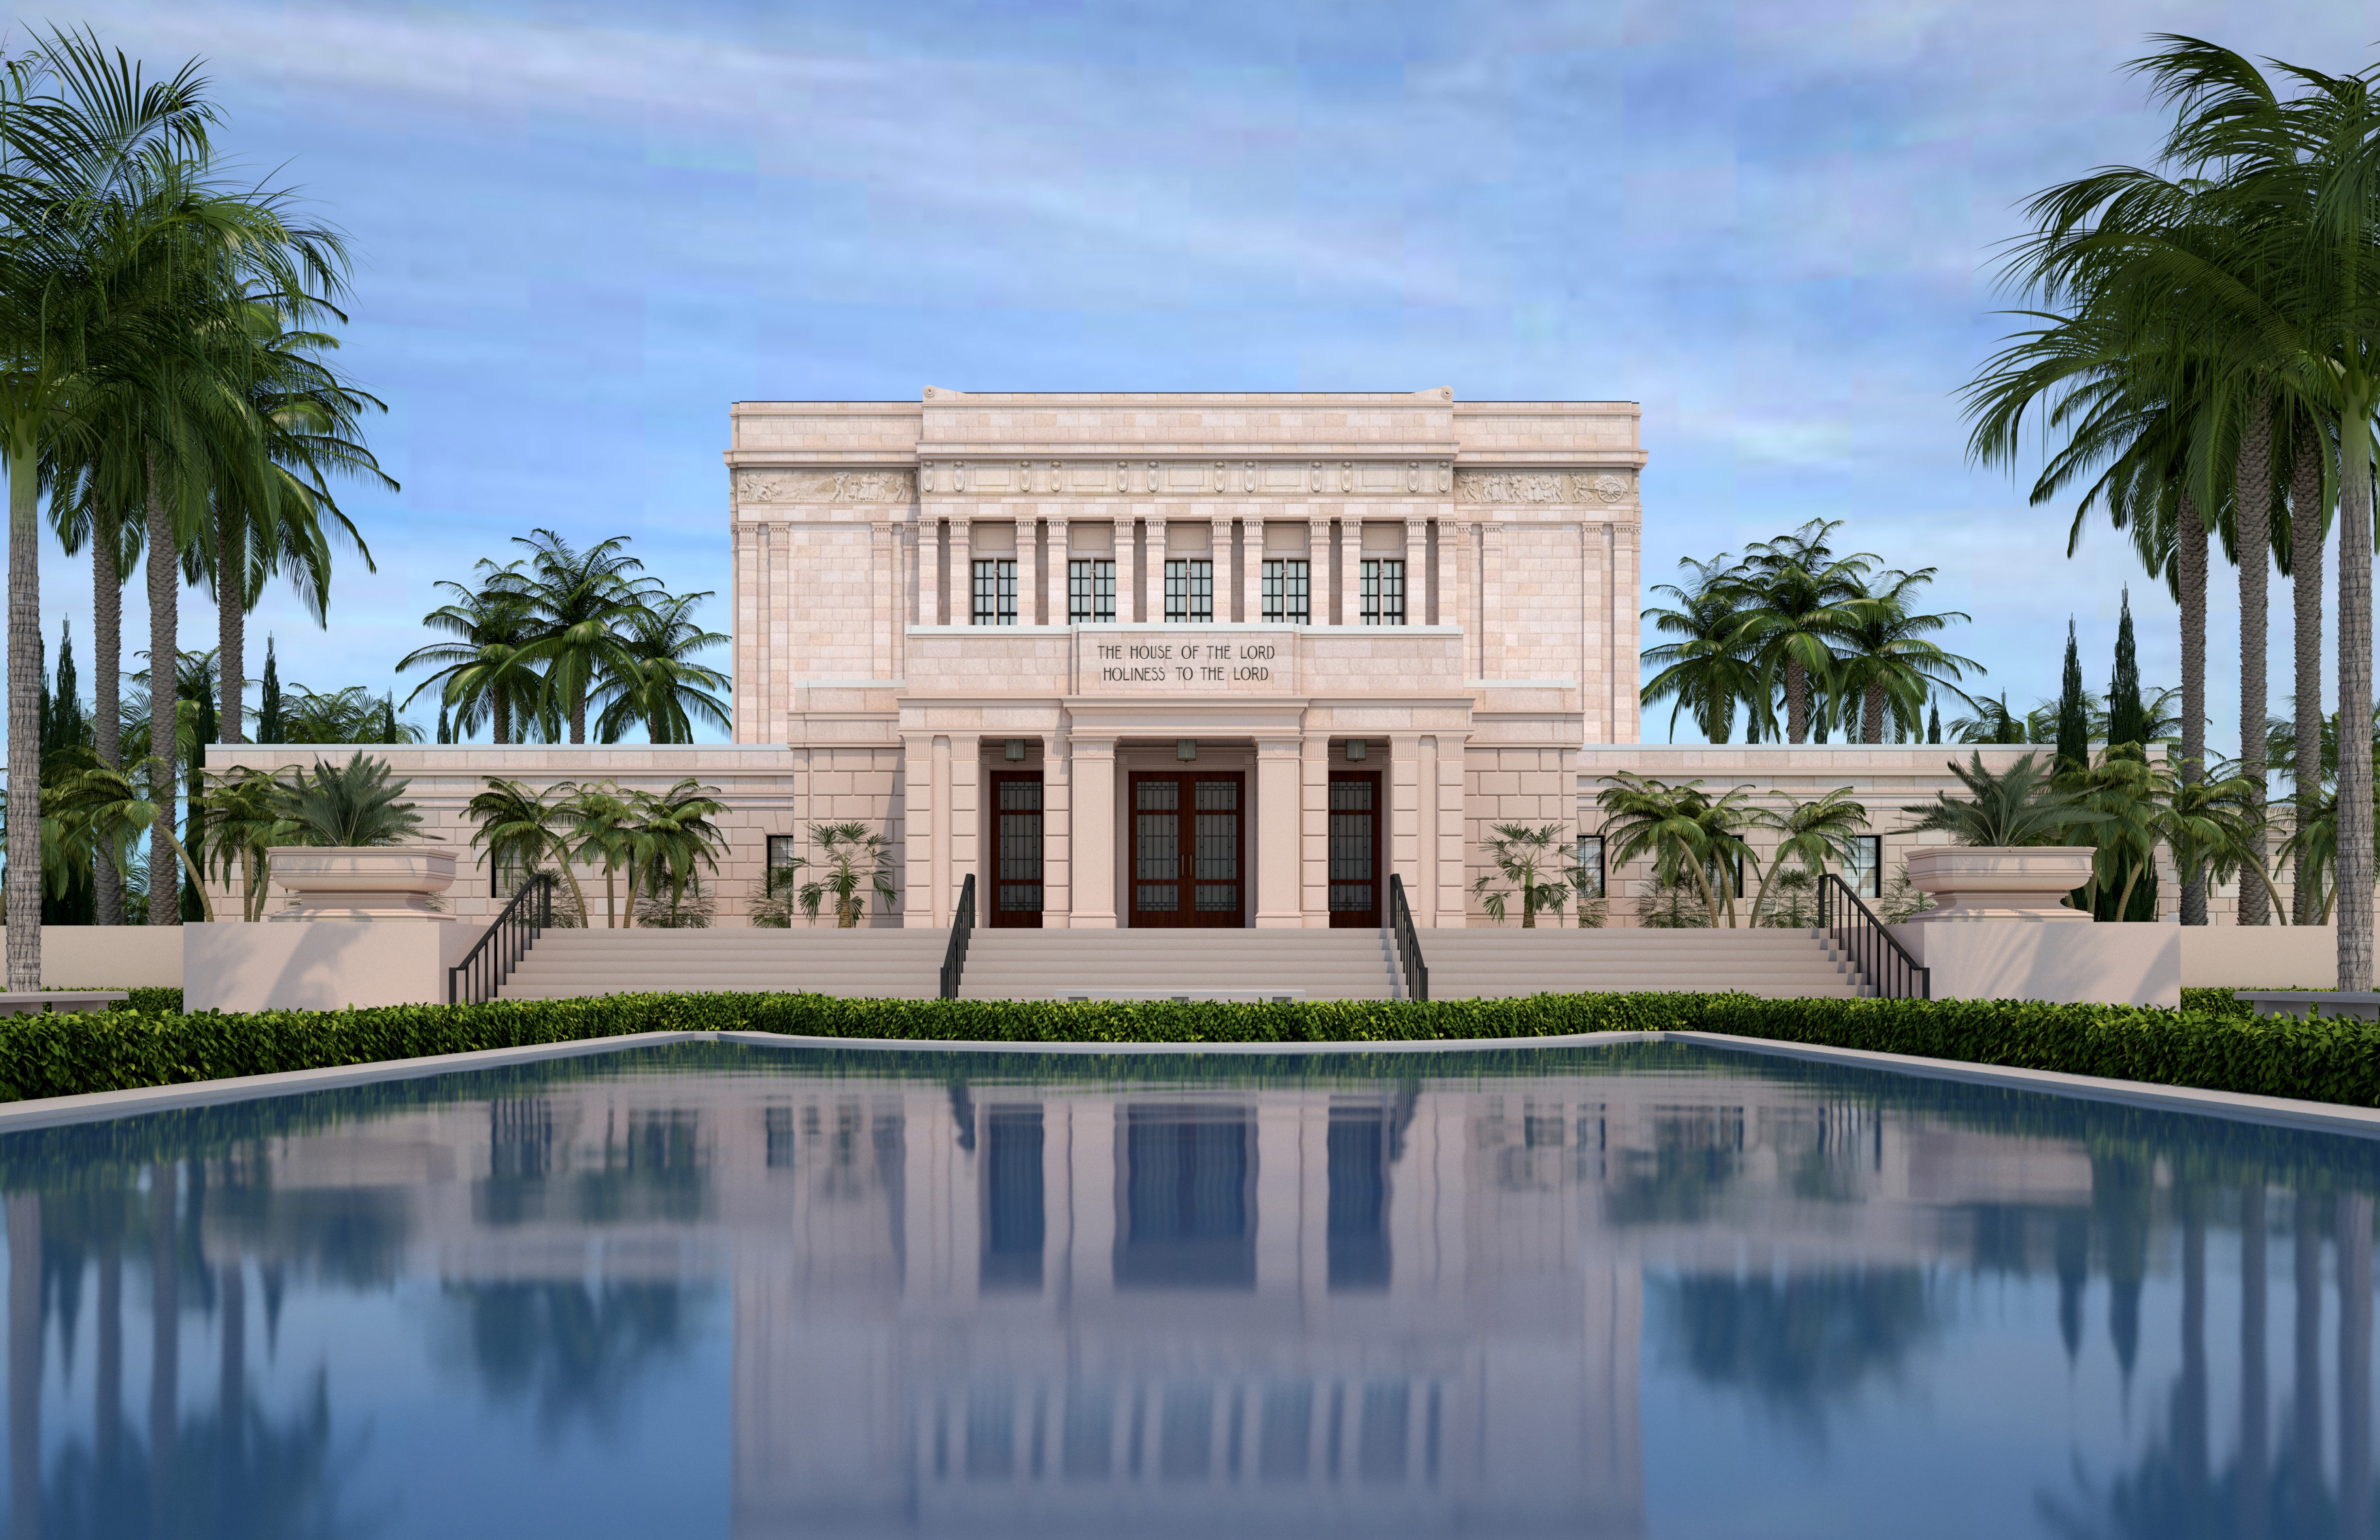 An artist's rendering of the Mesa Arizona Temple after its extensive renovation.